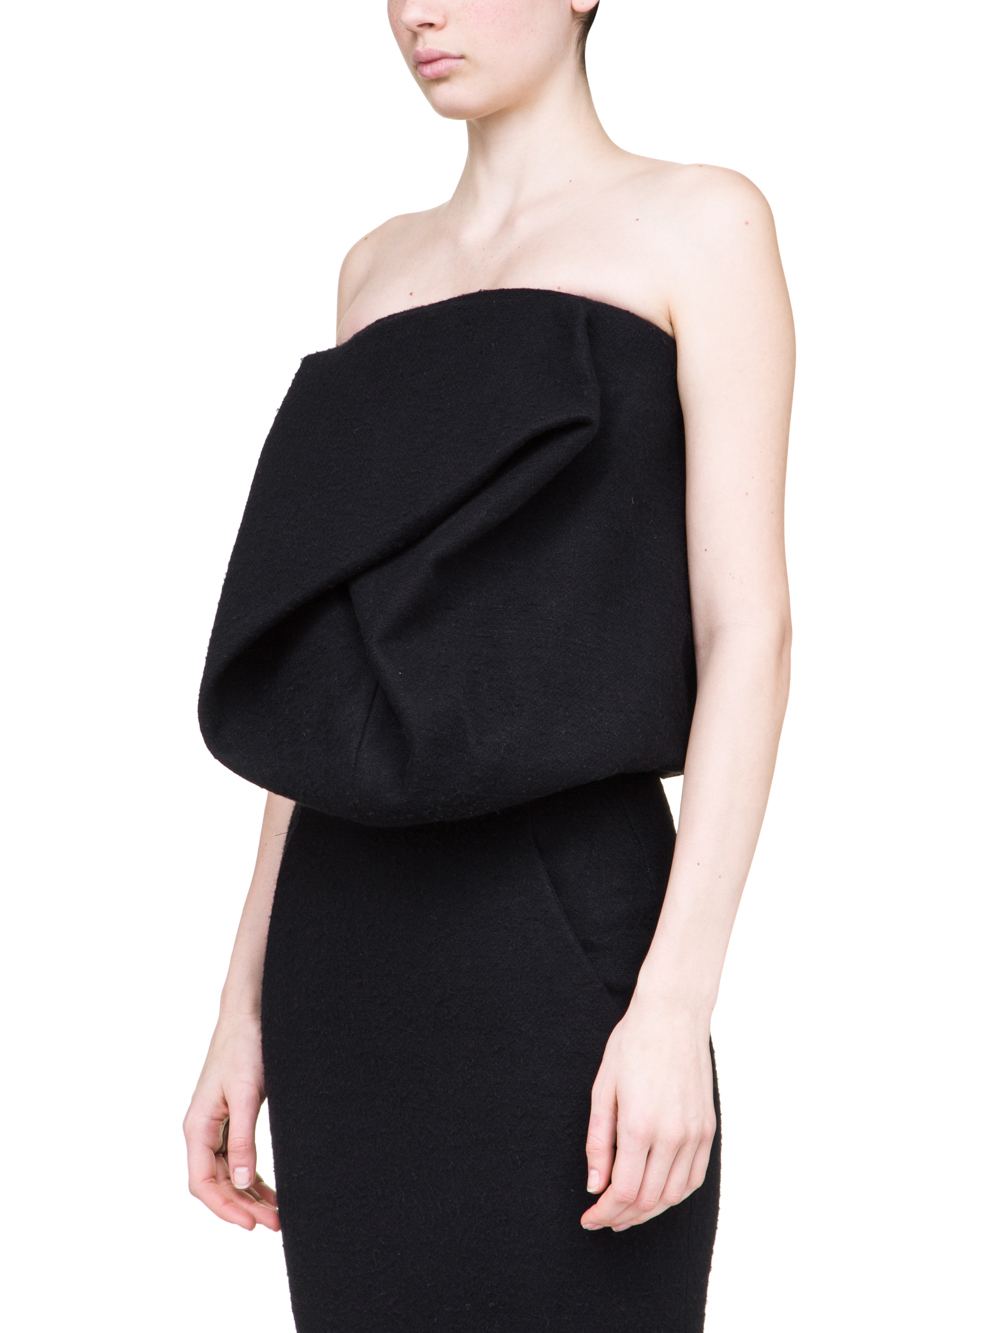 RICK OWENS OFF-THE-RUNWAY SCRUNCH TOP IN BLACK CAMEL WOOL